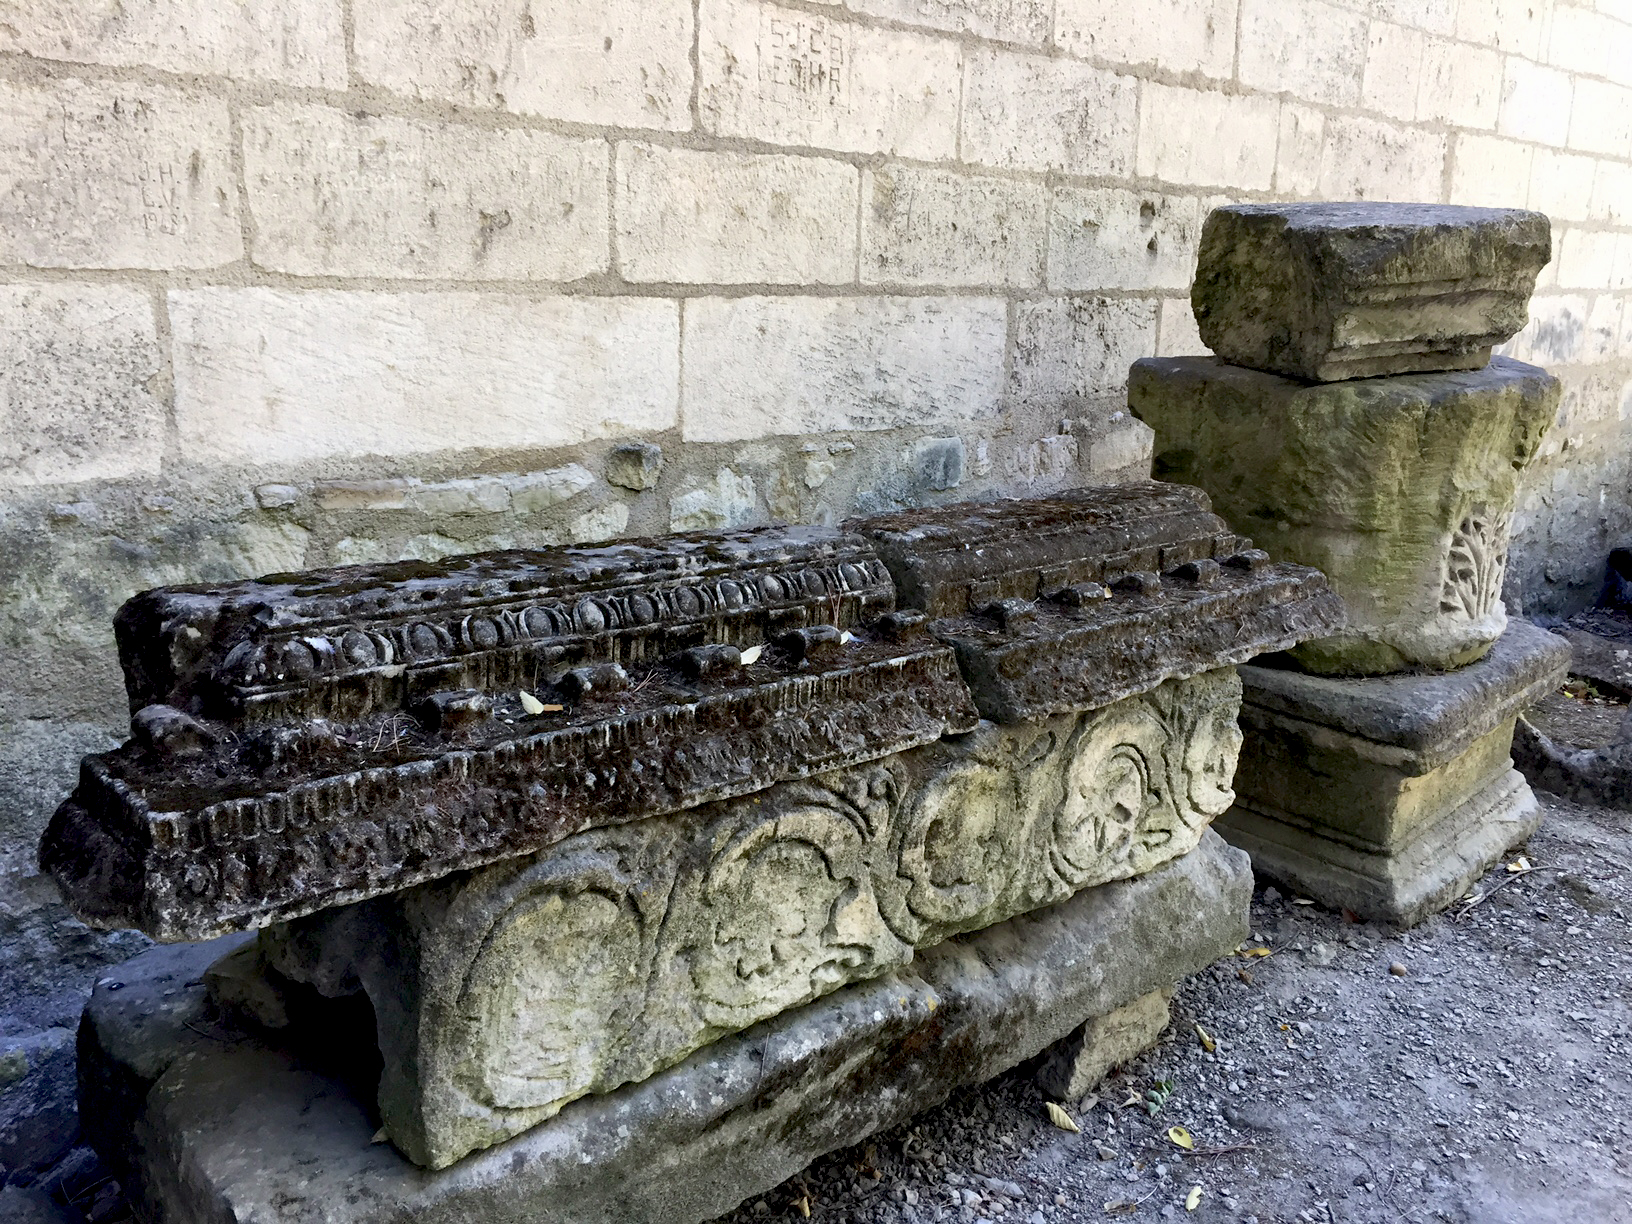 Alyscamps sarcophagus